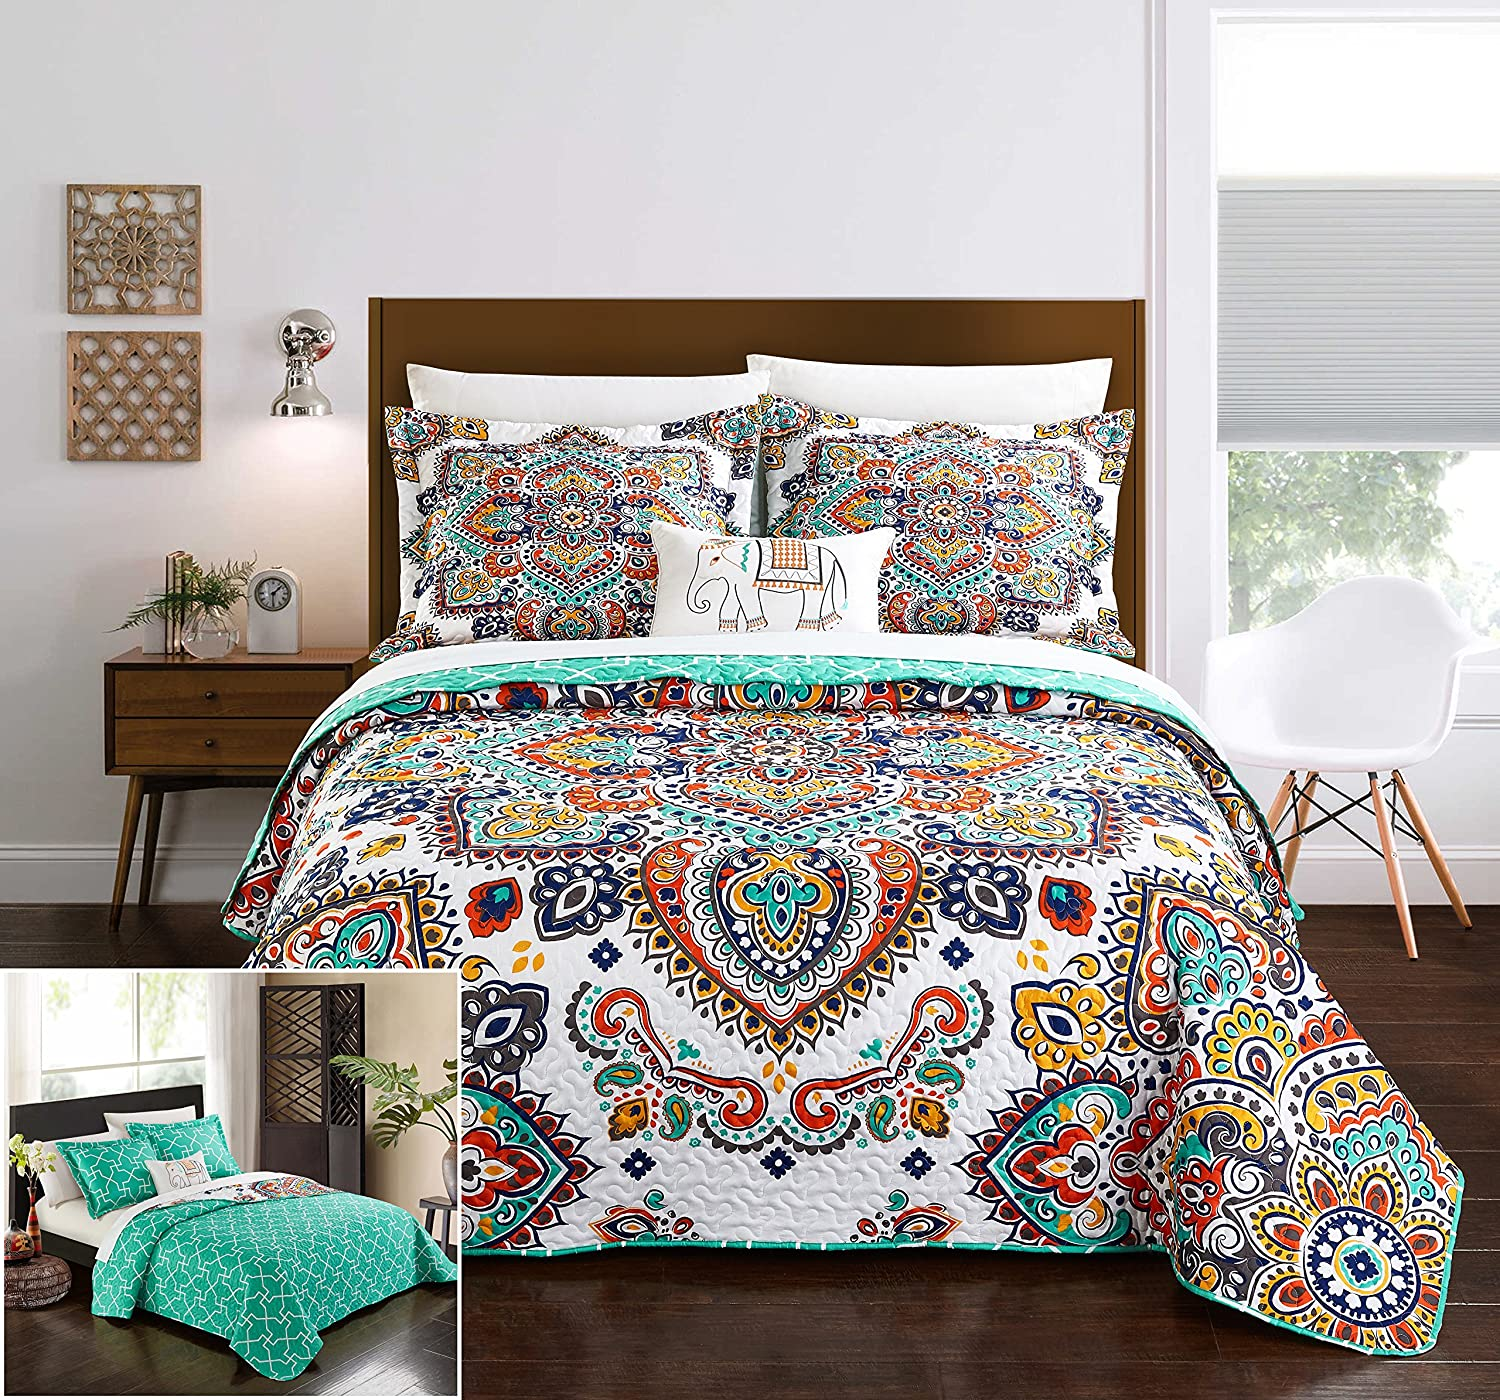 Chic Home 3 Piece Chagit Reversible Boho-Inspired Print and Contemporary Geometric Patterned Technique Twin Quilt Set Aqua